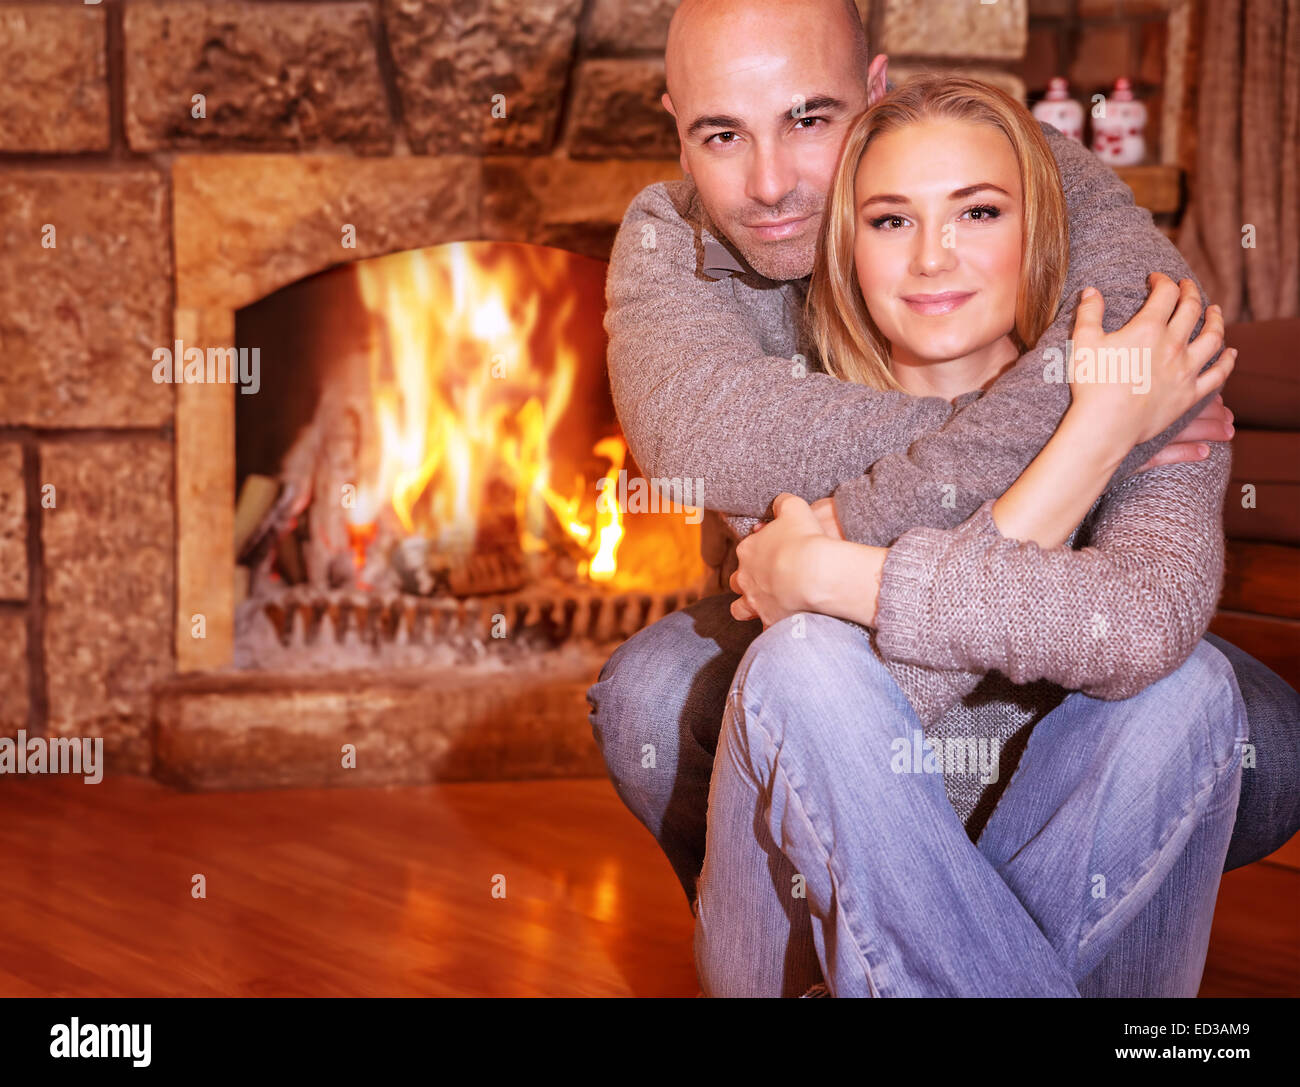 Portrait of gentle couple sitting near fireplace at home, romantic celebration of Christmas holidays, love and togetherness - Stock Image